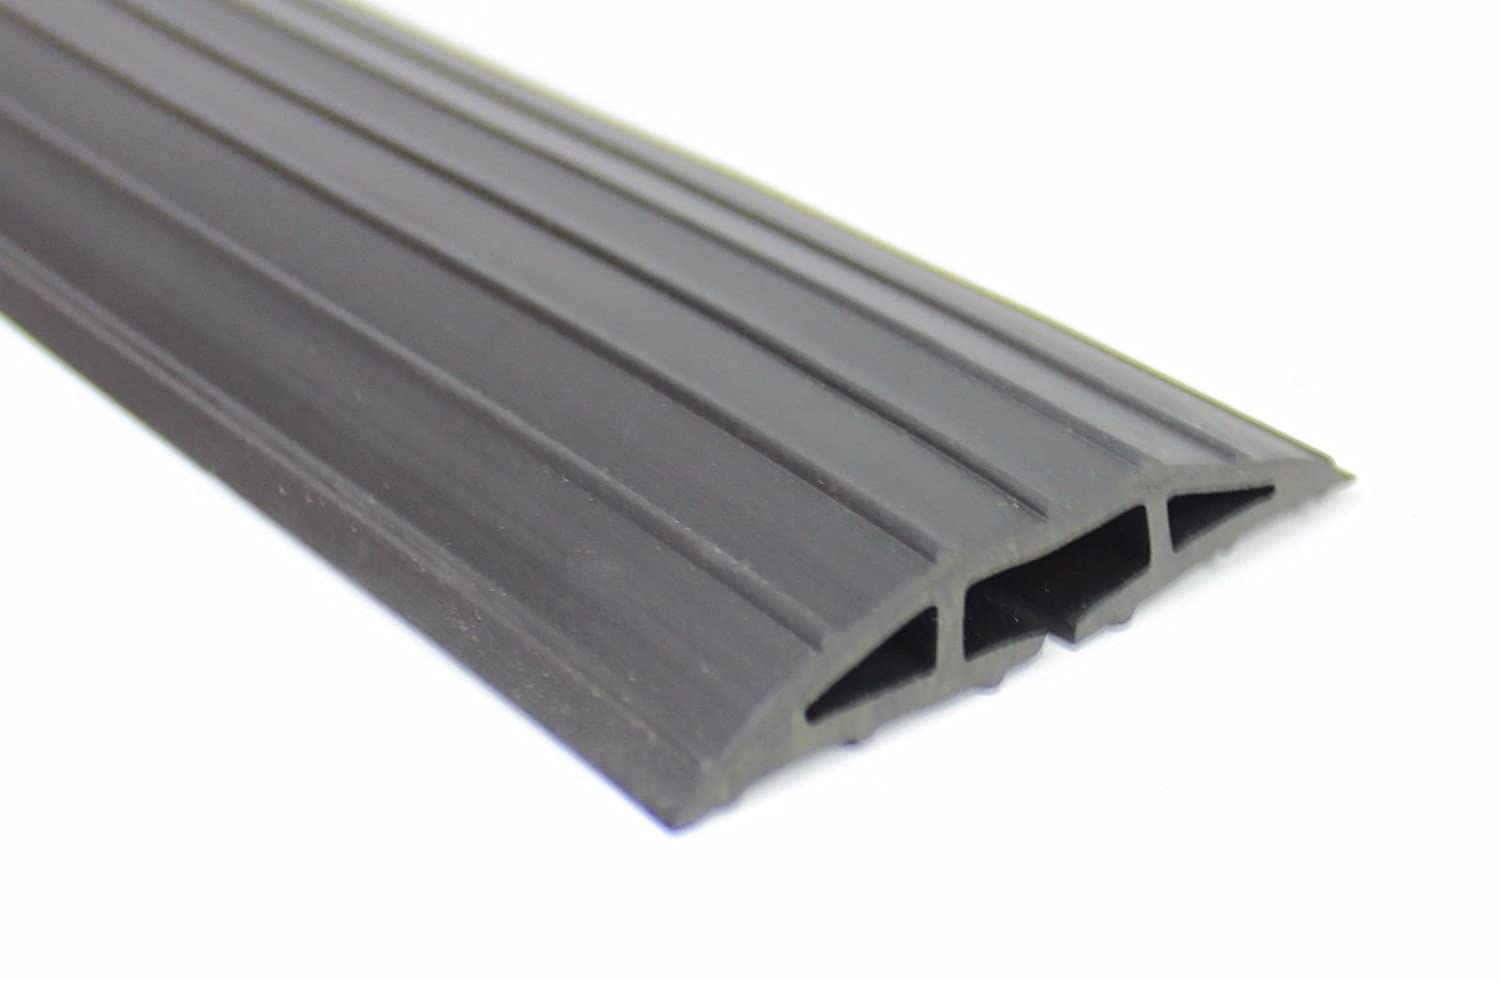 Black Rubber Floor Cable Wire Cover Tidy Protector Safety Trunking Ramp standard